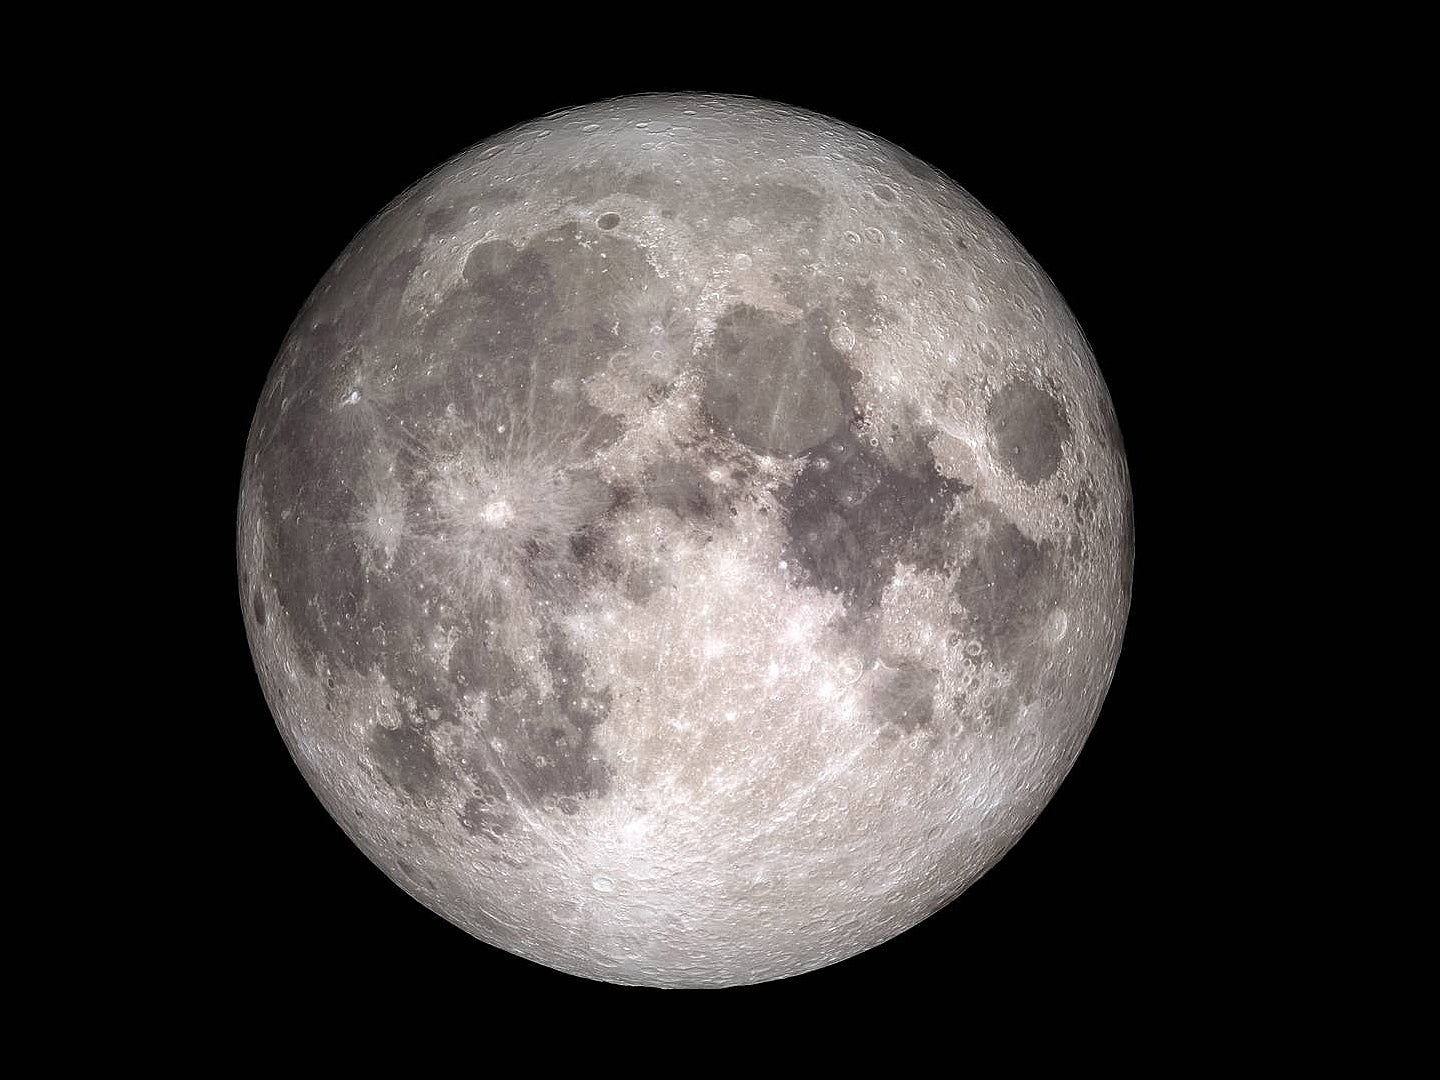 The moon is in line to get LTE.